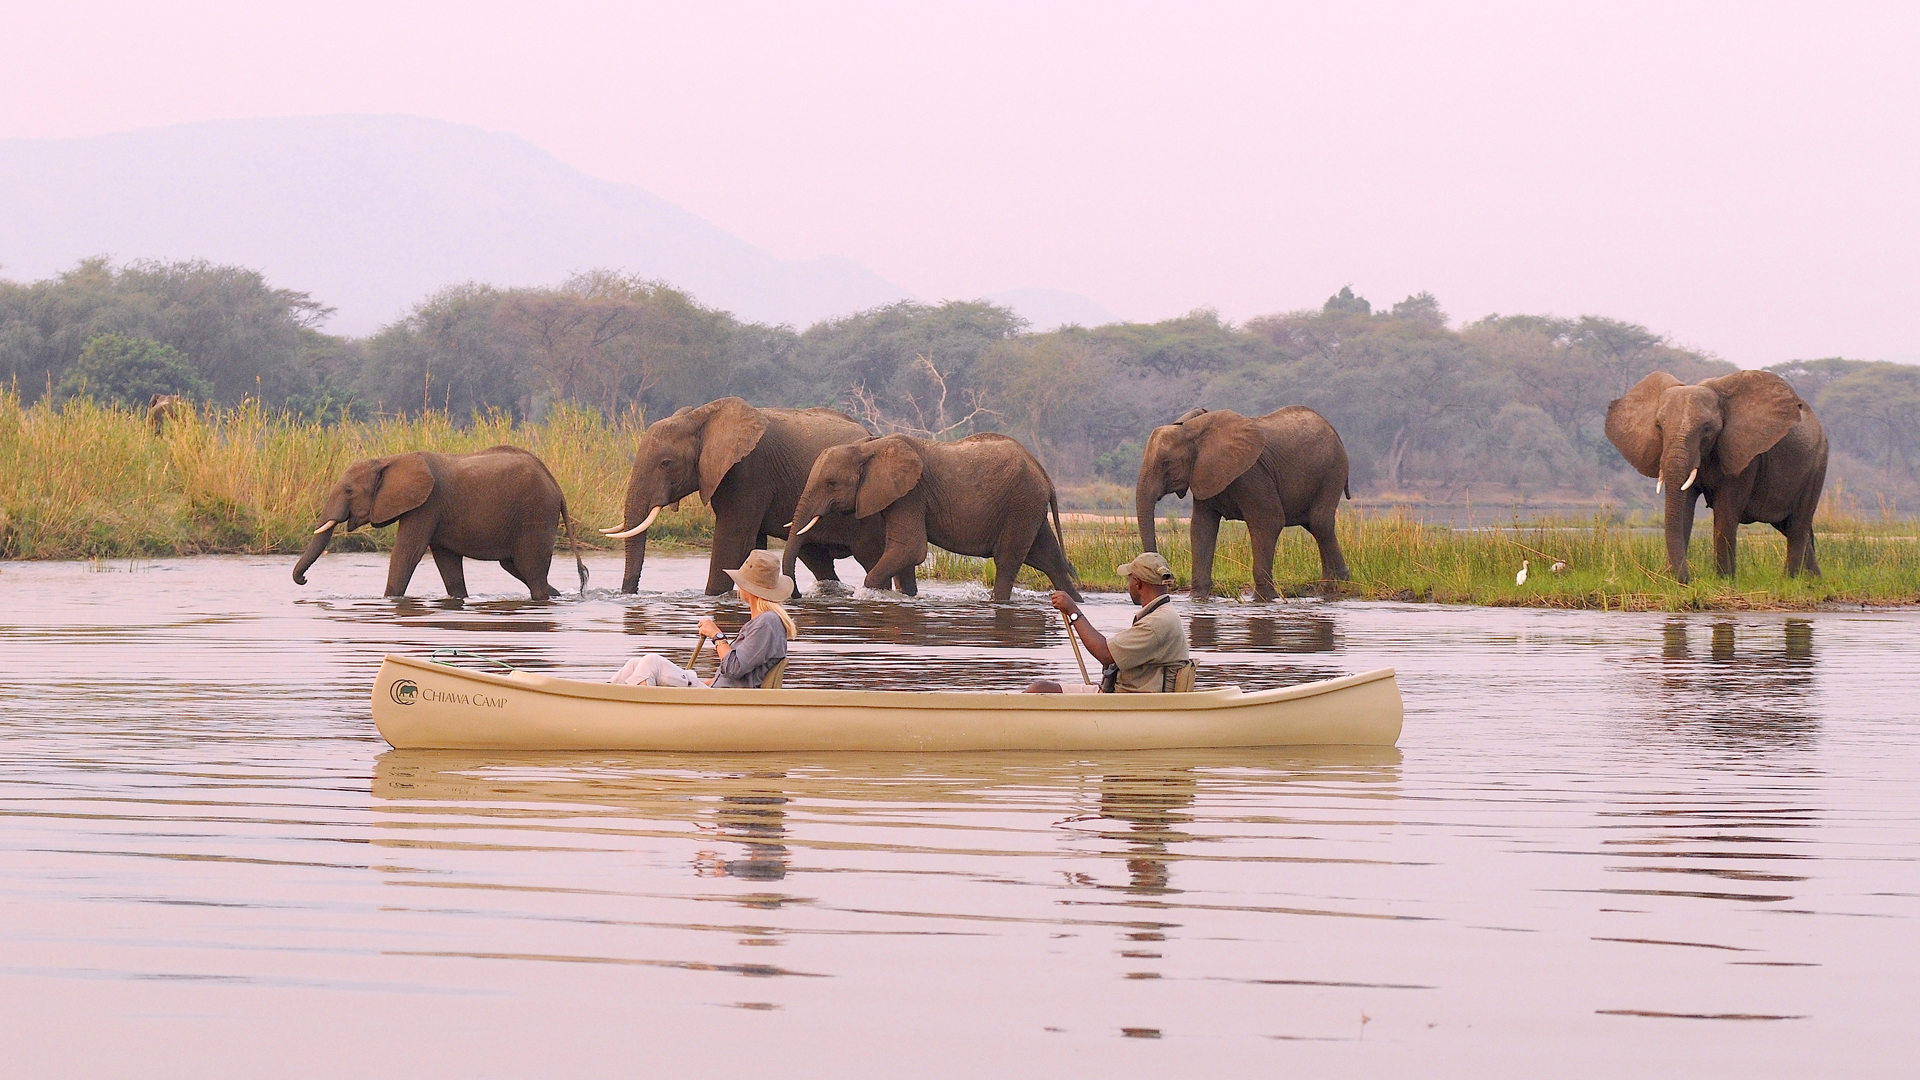 zambia activities chiawa canoeing elephants